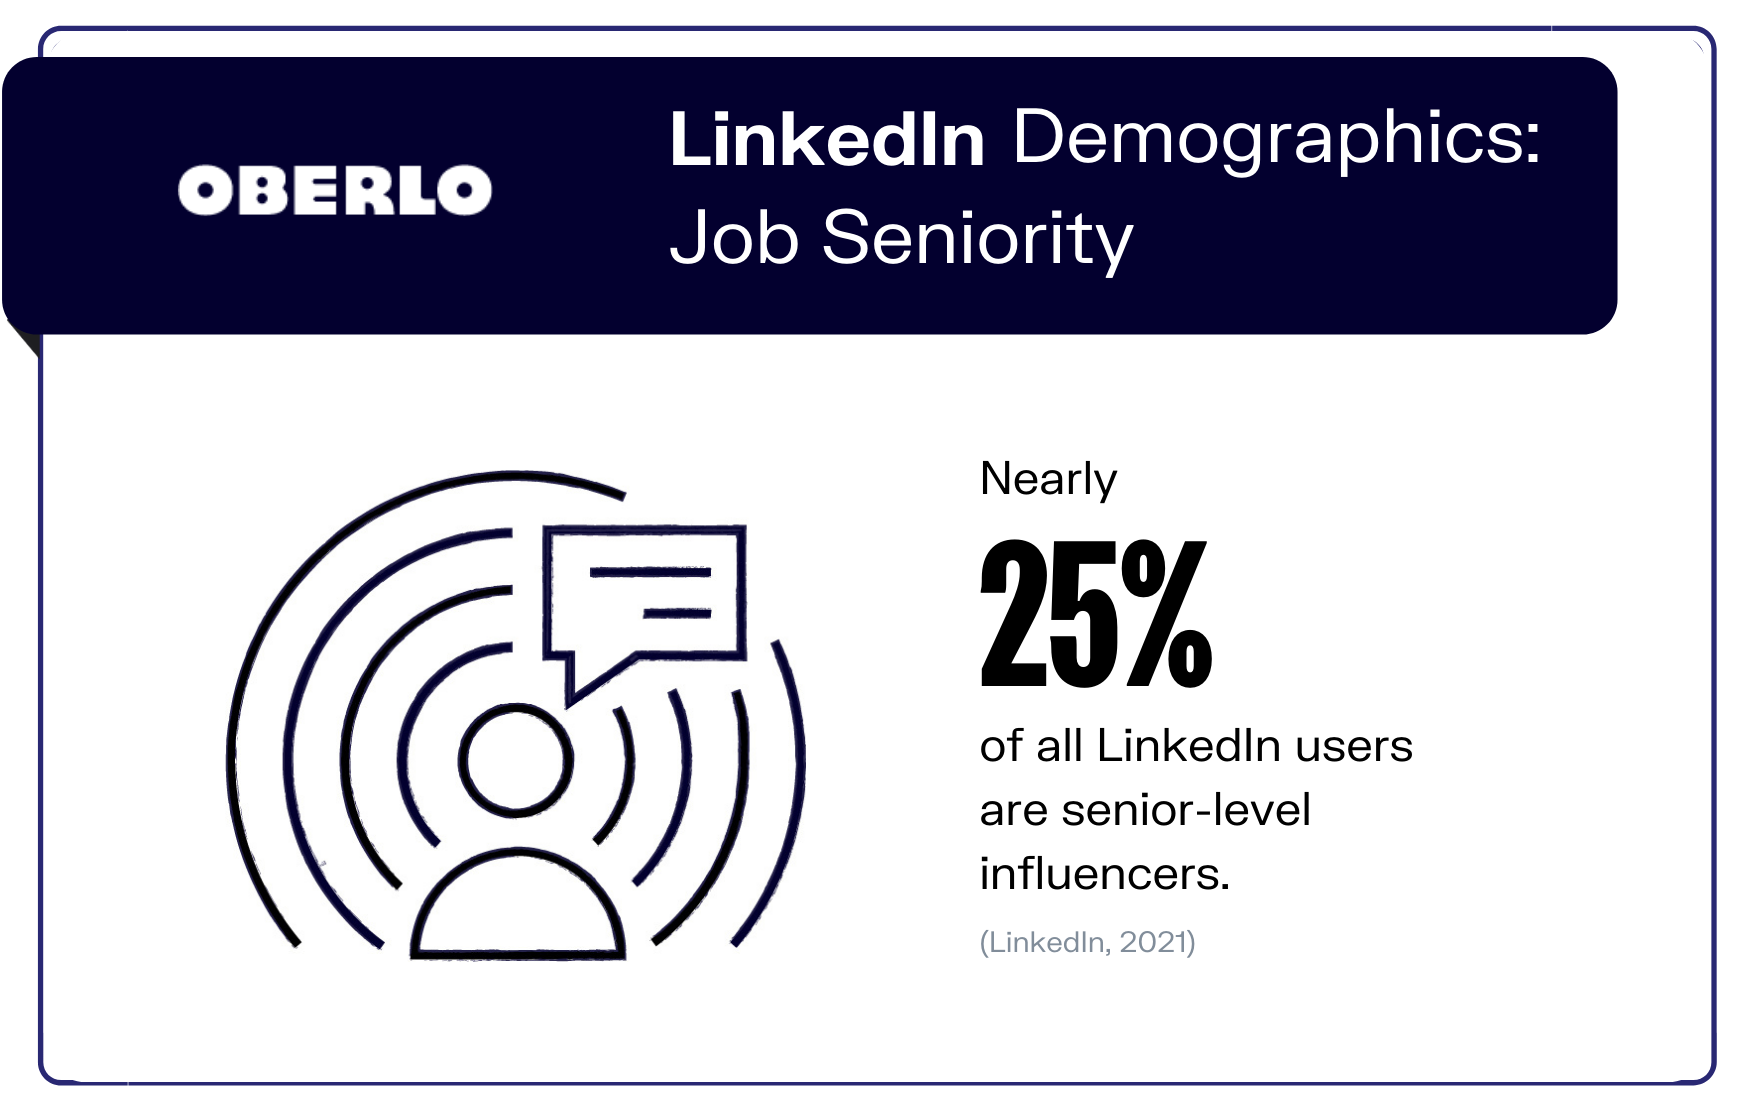 LinkedIn Demographics: Job Seniority graphic